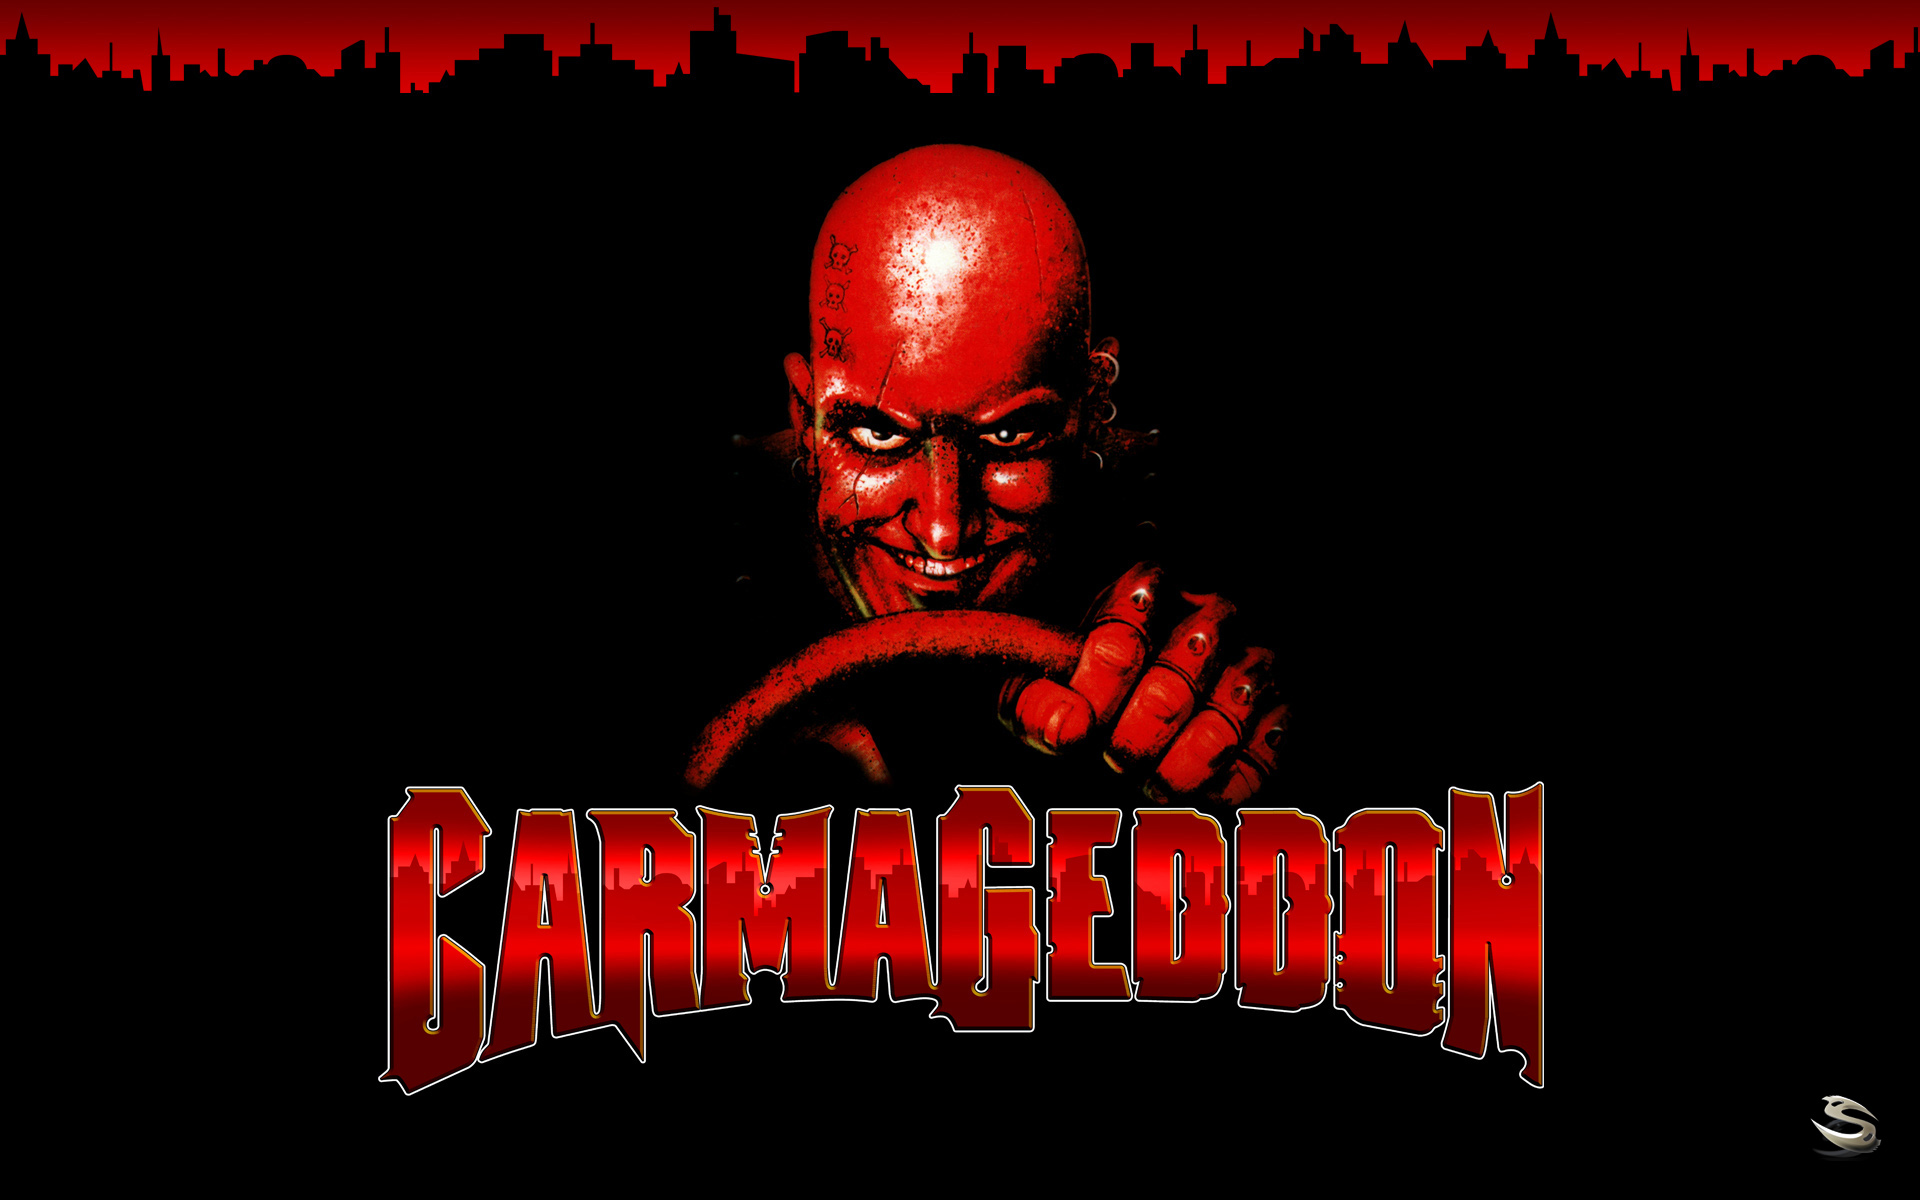 Carmageddon 1997 PC artwork